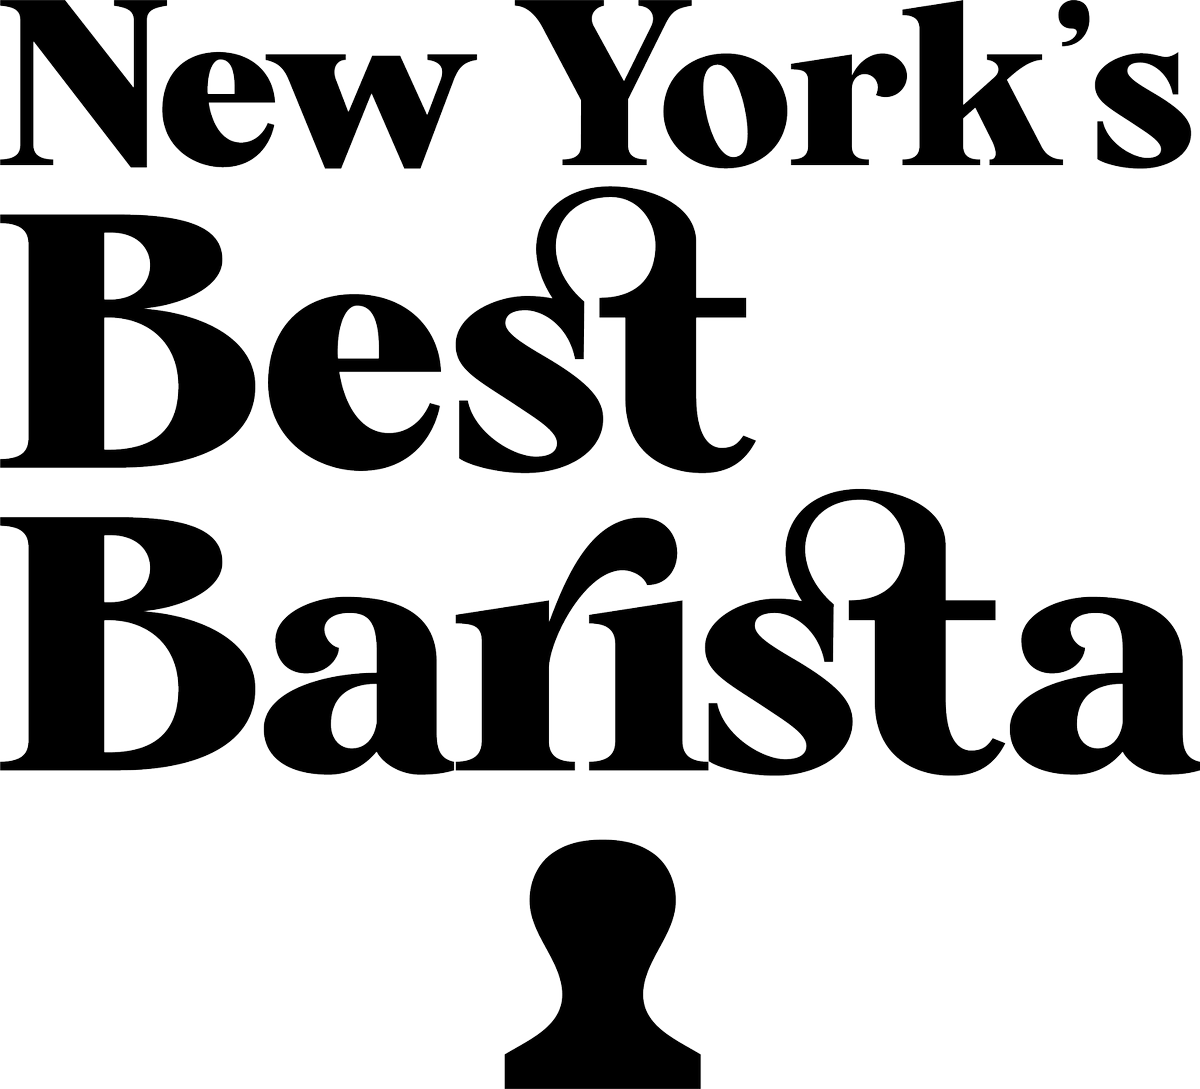 Do you know New York's Best Barista? 🤩 Submit your local nomination now! Awesome prizes to be won. Nominate your favorite NYC Barista here: newyorkcoffeefestival.com/newyorksbestba…